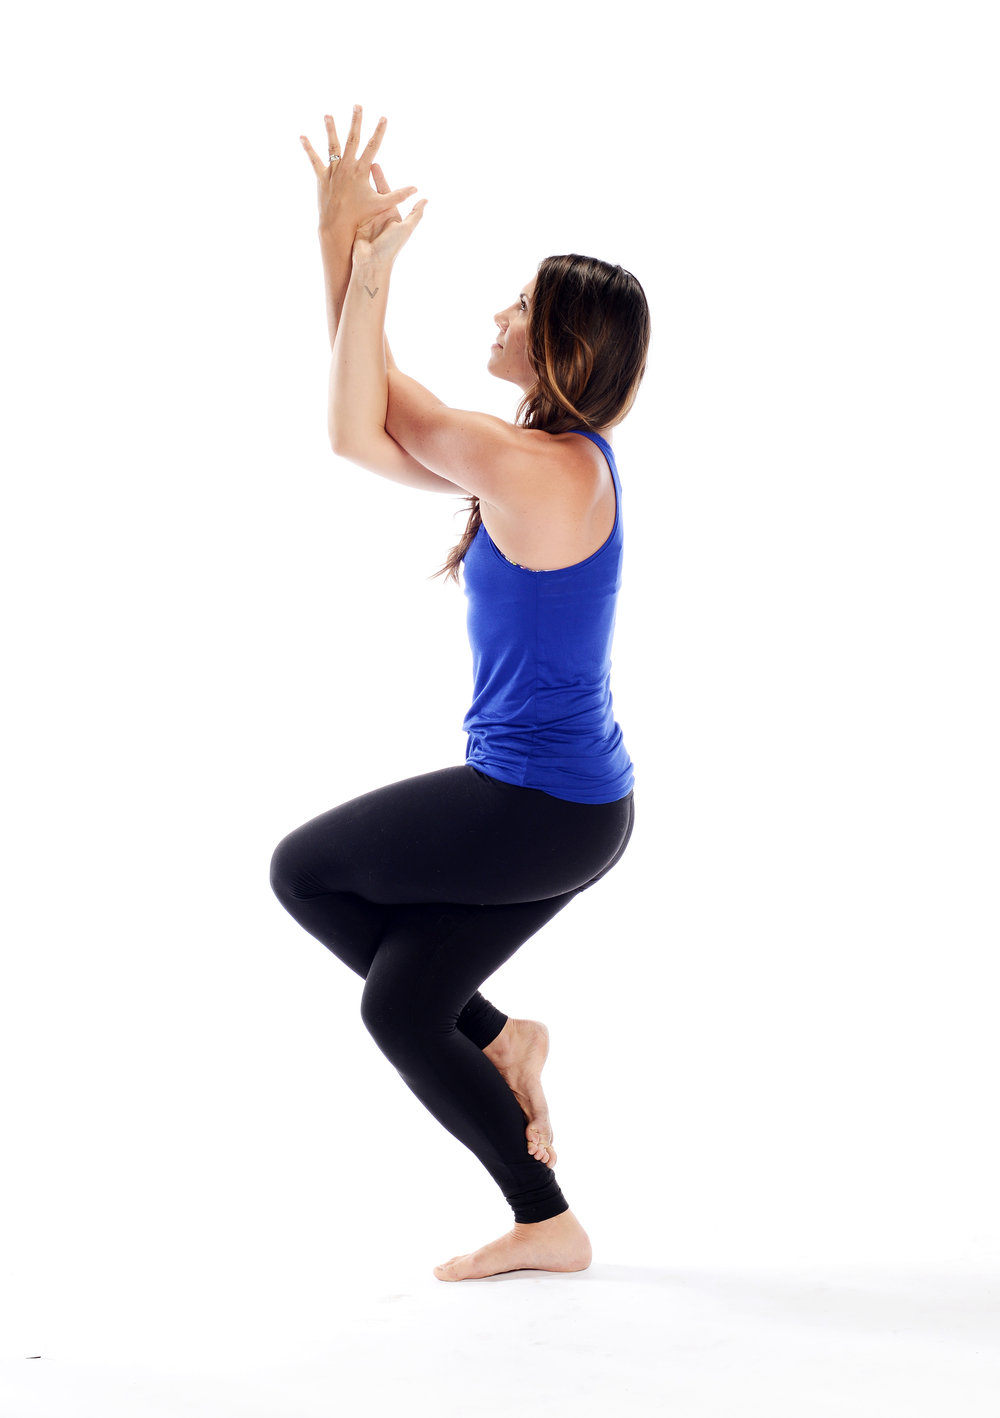 Foundations of the Practice - Jan 2 - 23, 2019Wednesdays 7 -9pThis four week series is for everyone - from beginners to seasoned practitioners led by Kristina Renee Kuzmich Bengala.Throughout the series focus will be on the foundations of the yoga practice exploring the basic yoga postures, essential breath-work practices and the importance of yin and yang balance in the practice. There will be an in-depth review of the postures traditionally practiced in Sun Salutations as those are the blueprint poses for all other poses. Working from the ground up to create a solid foundation that is safe and evolutionary, there will be space for inquiry and unique exploration. Each week will build on the next, so it is recommended to register for the entire series. However, drop ins are welcome.This series is held later in the evening and thus, each class will end in a long restoration practice to integrate the series work!WEEK 1 - Yoga is Mindfulness: Philosophy, Breath & FoundationsWEEK 2 - Heart of the Matter: Shoulder, Neck & Truck Consciousness for Longevity and EaseWEEK 3 - Standing in Truth: Feet, Legs & Spinal Awareness for Grounding and StrengthWEEK 4 - Root Balance: Sacrum, Hips & Deep RestI N V E S T M E N T :$80 by Jan 1st / $90 afterdrop in: $25